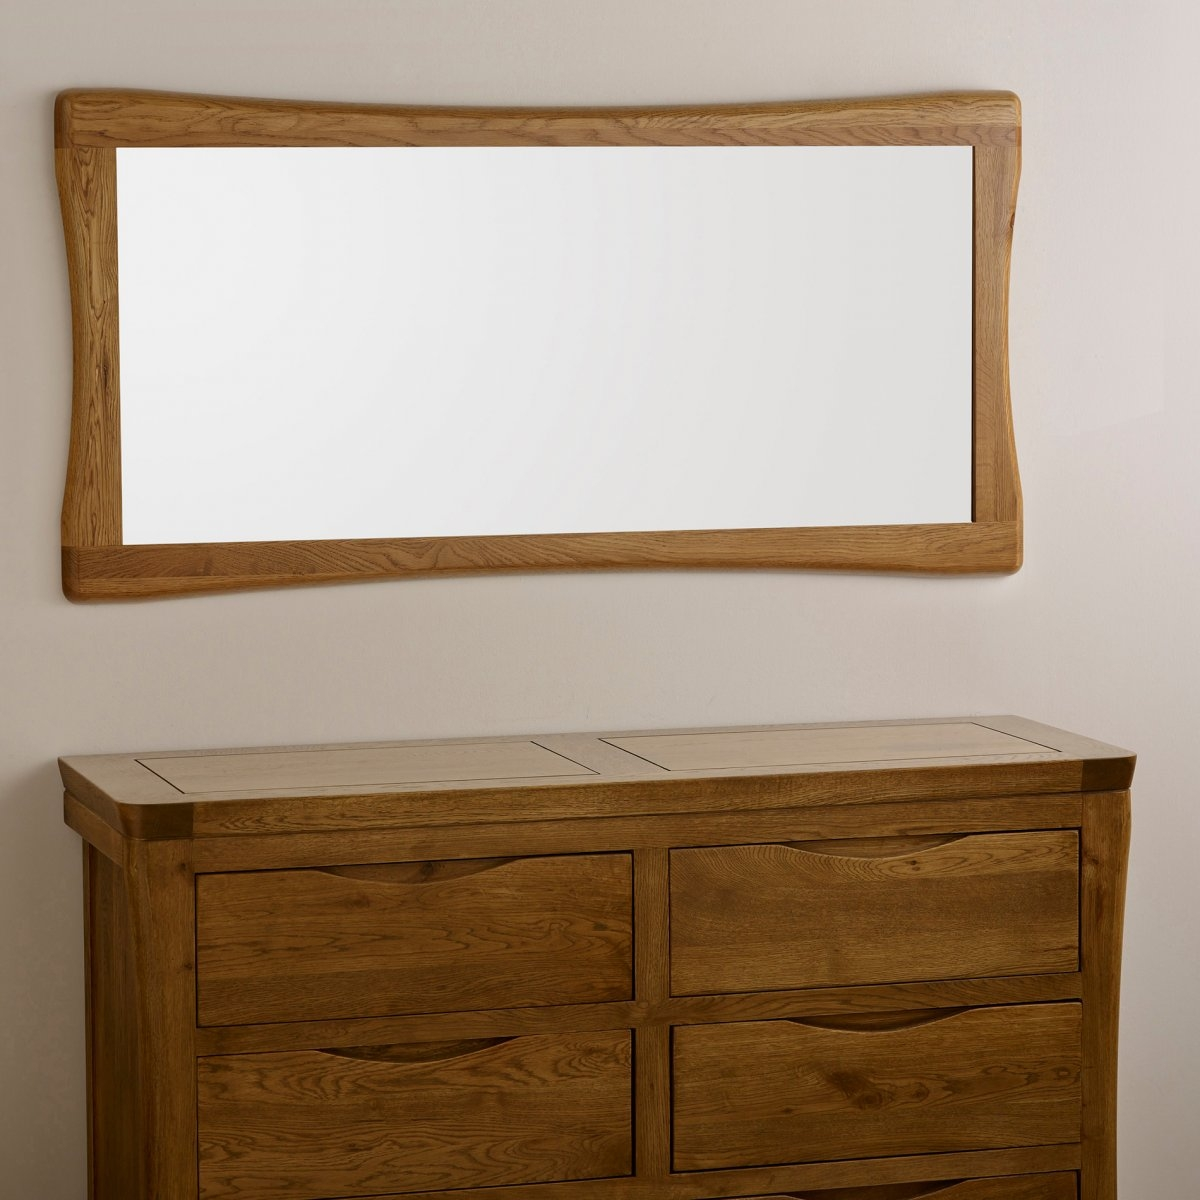 Orrick Wall Mirror In Natural Solid Oak Oak Furniture Land In Rustic Oak Mirror (Image 11 of 15)